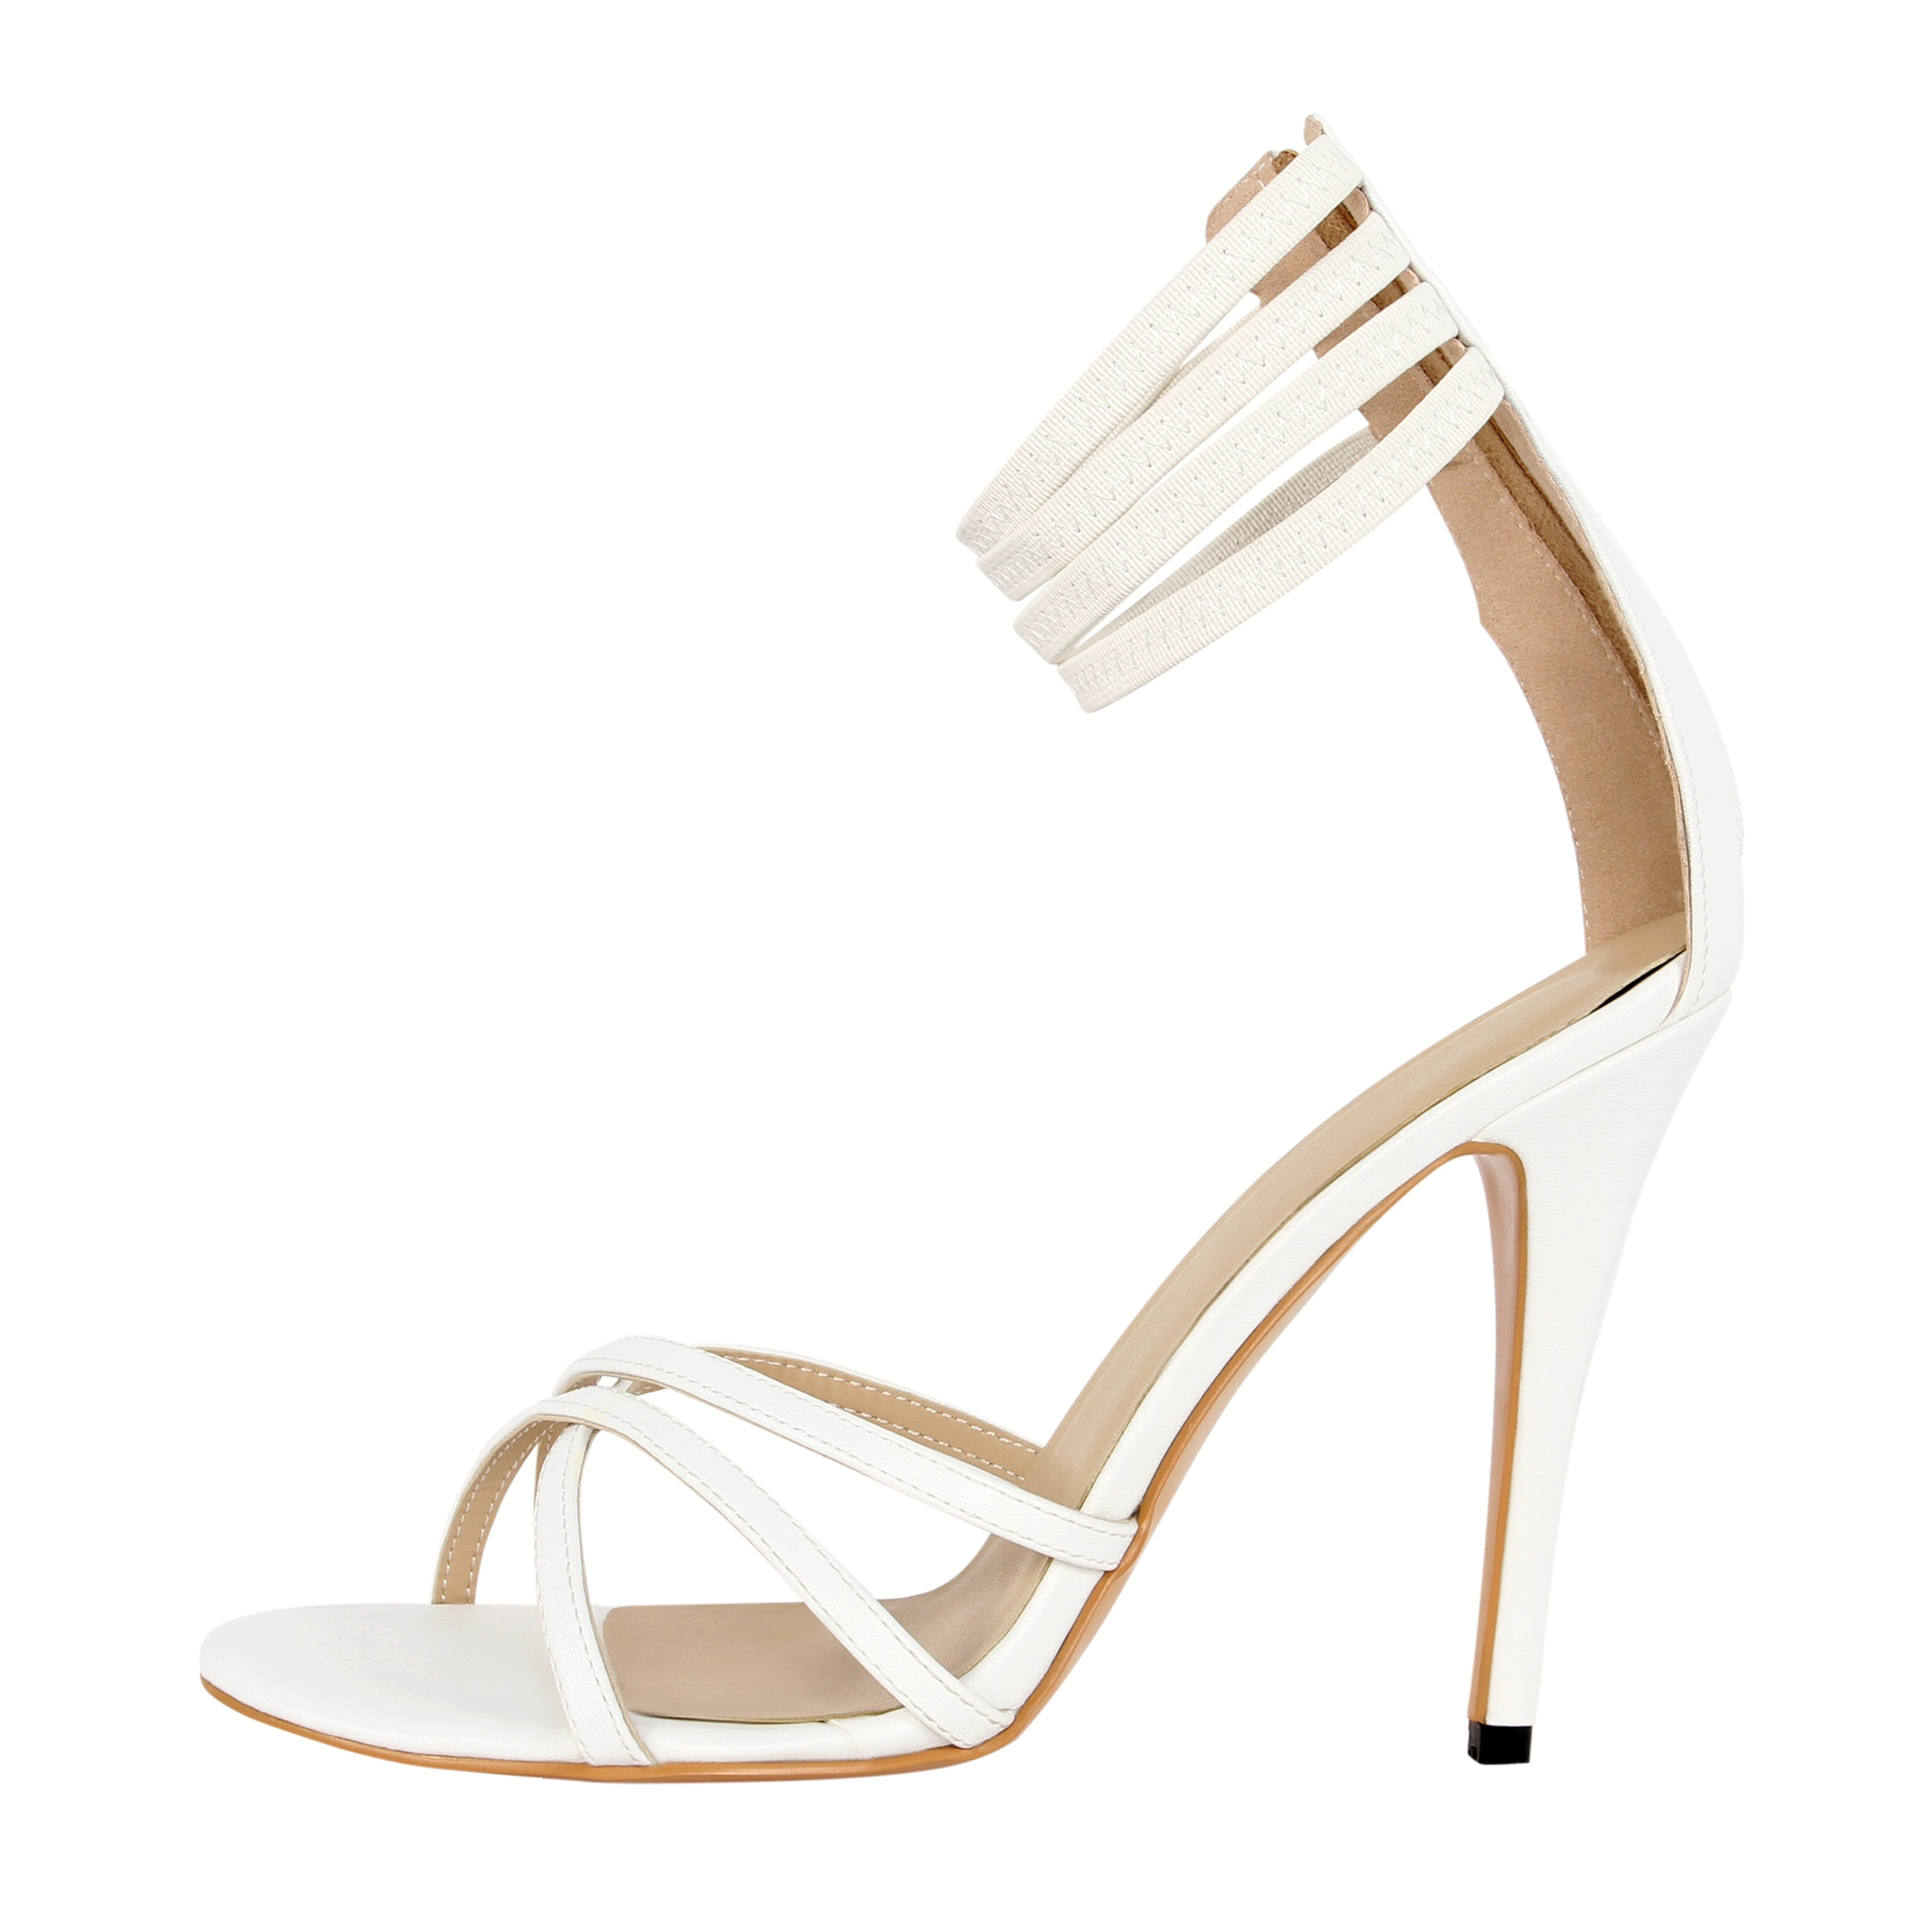 Elegant Crossed-ties Stiletto Sandals with Back Zipper